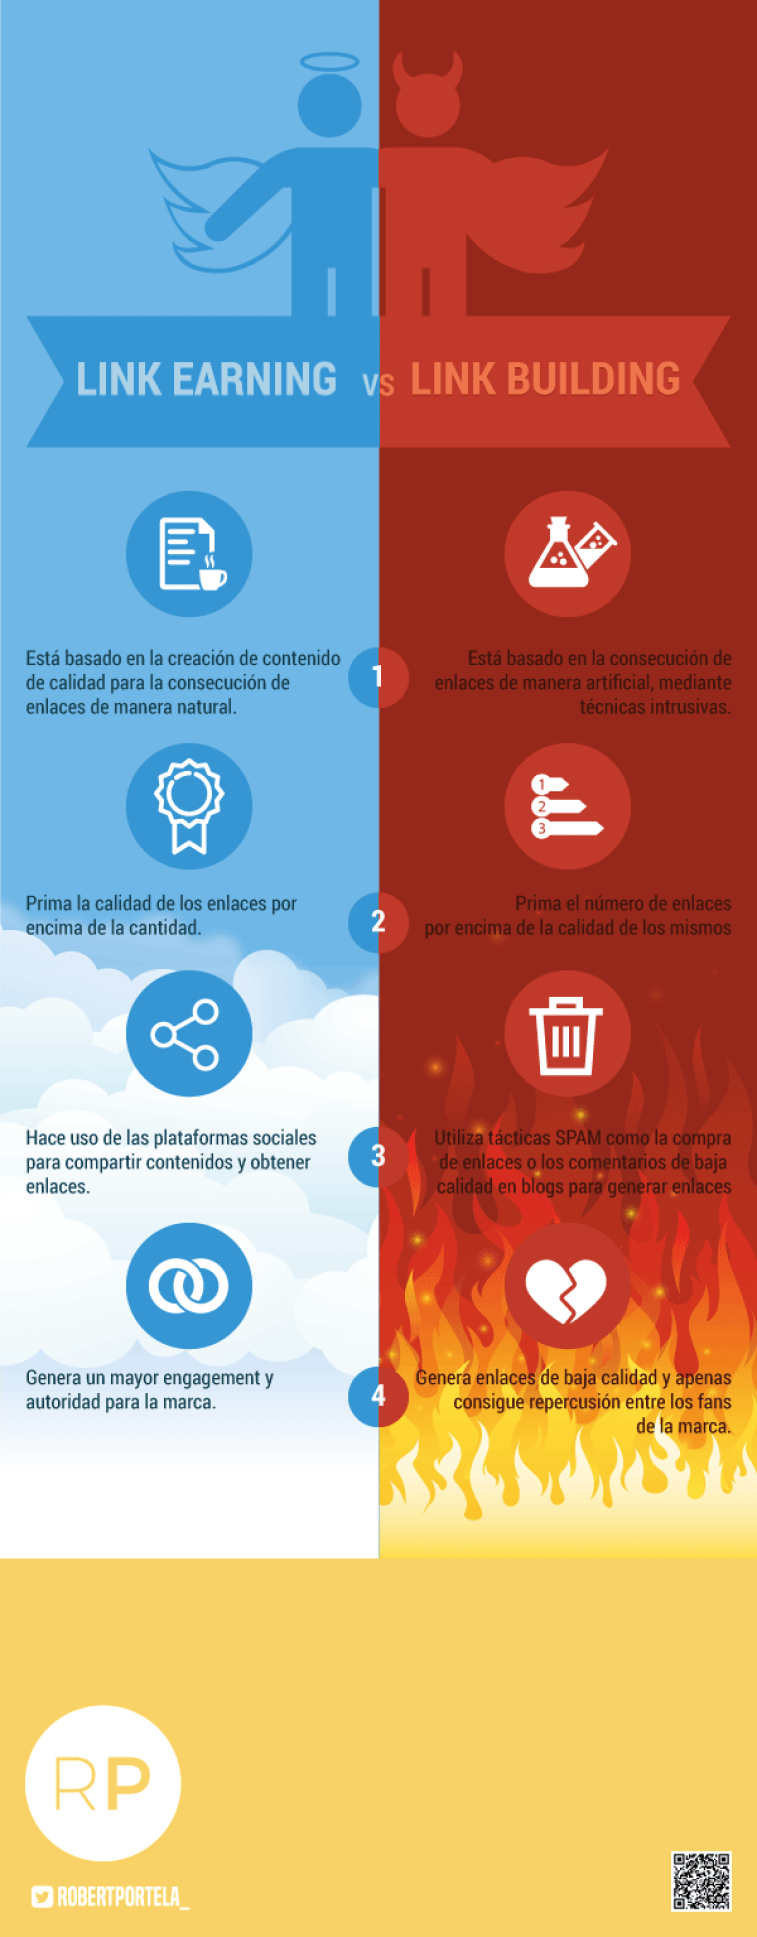 link-earning-vs-link-building-infografia